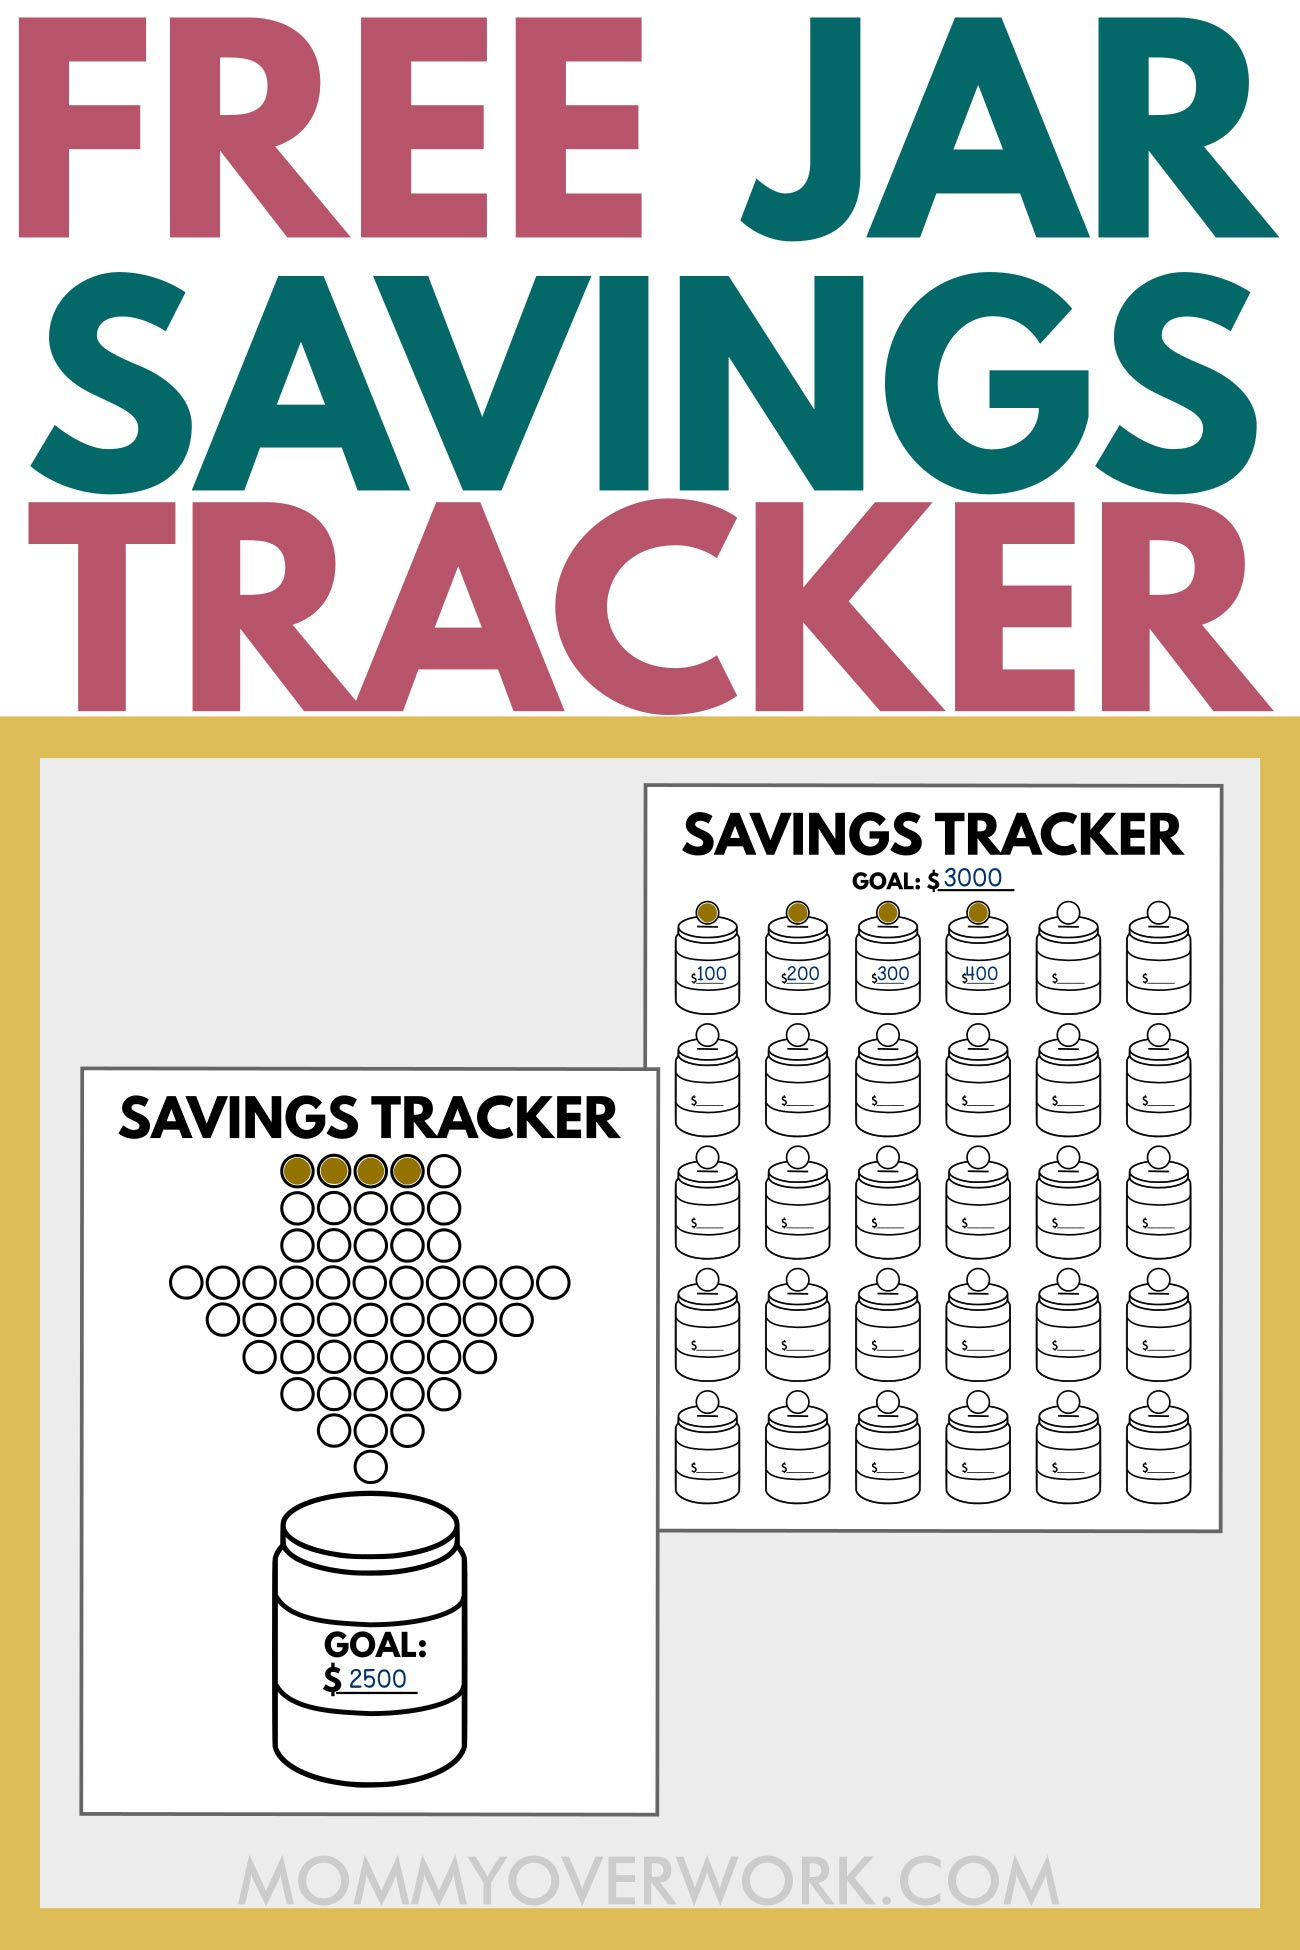 free mason jar savings tracker text atop printables with goals and coins filled in.